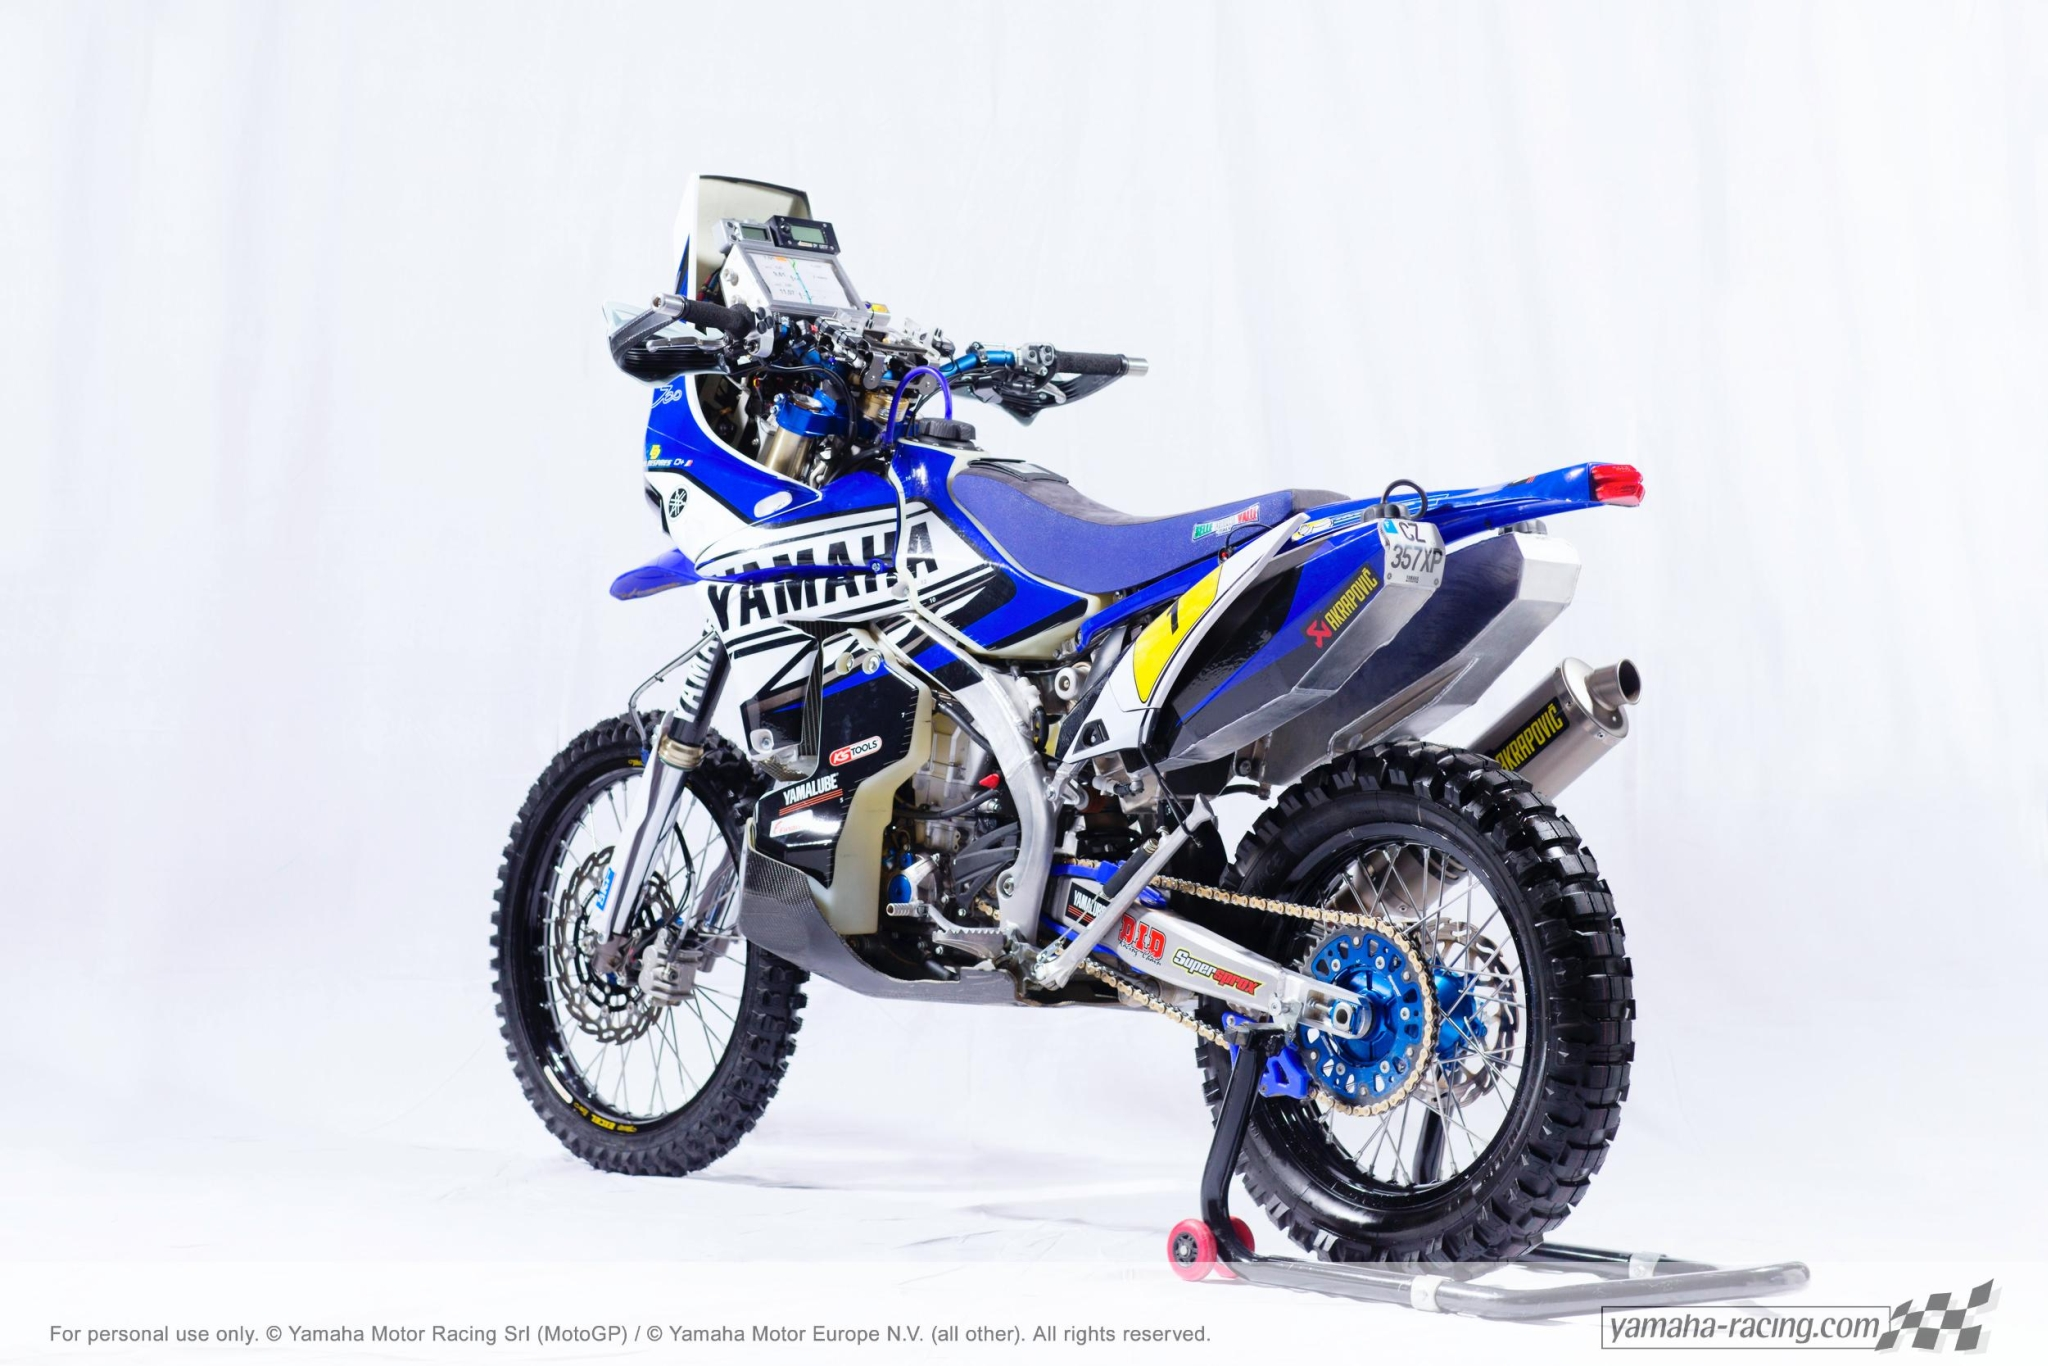 Dakar 2014 2014-dakar-yamaha-shows-despres-yz450f-rally-bike-photo-gallery_6